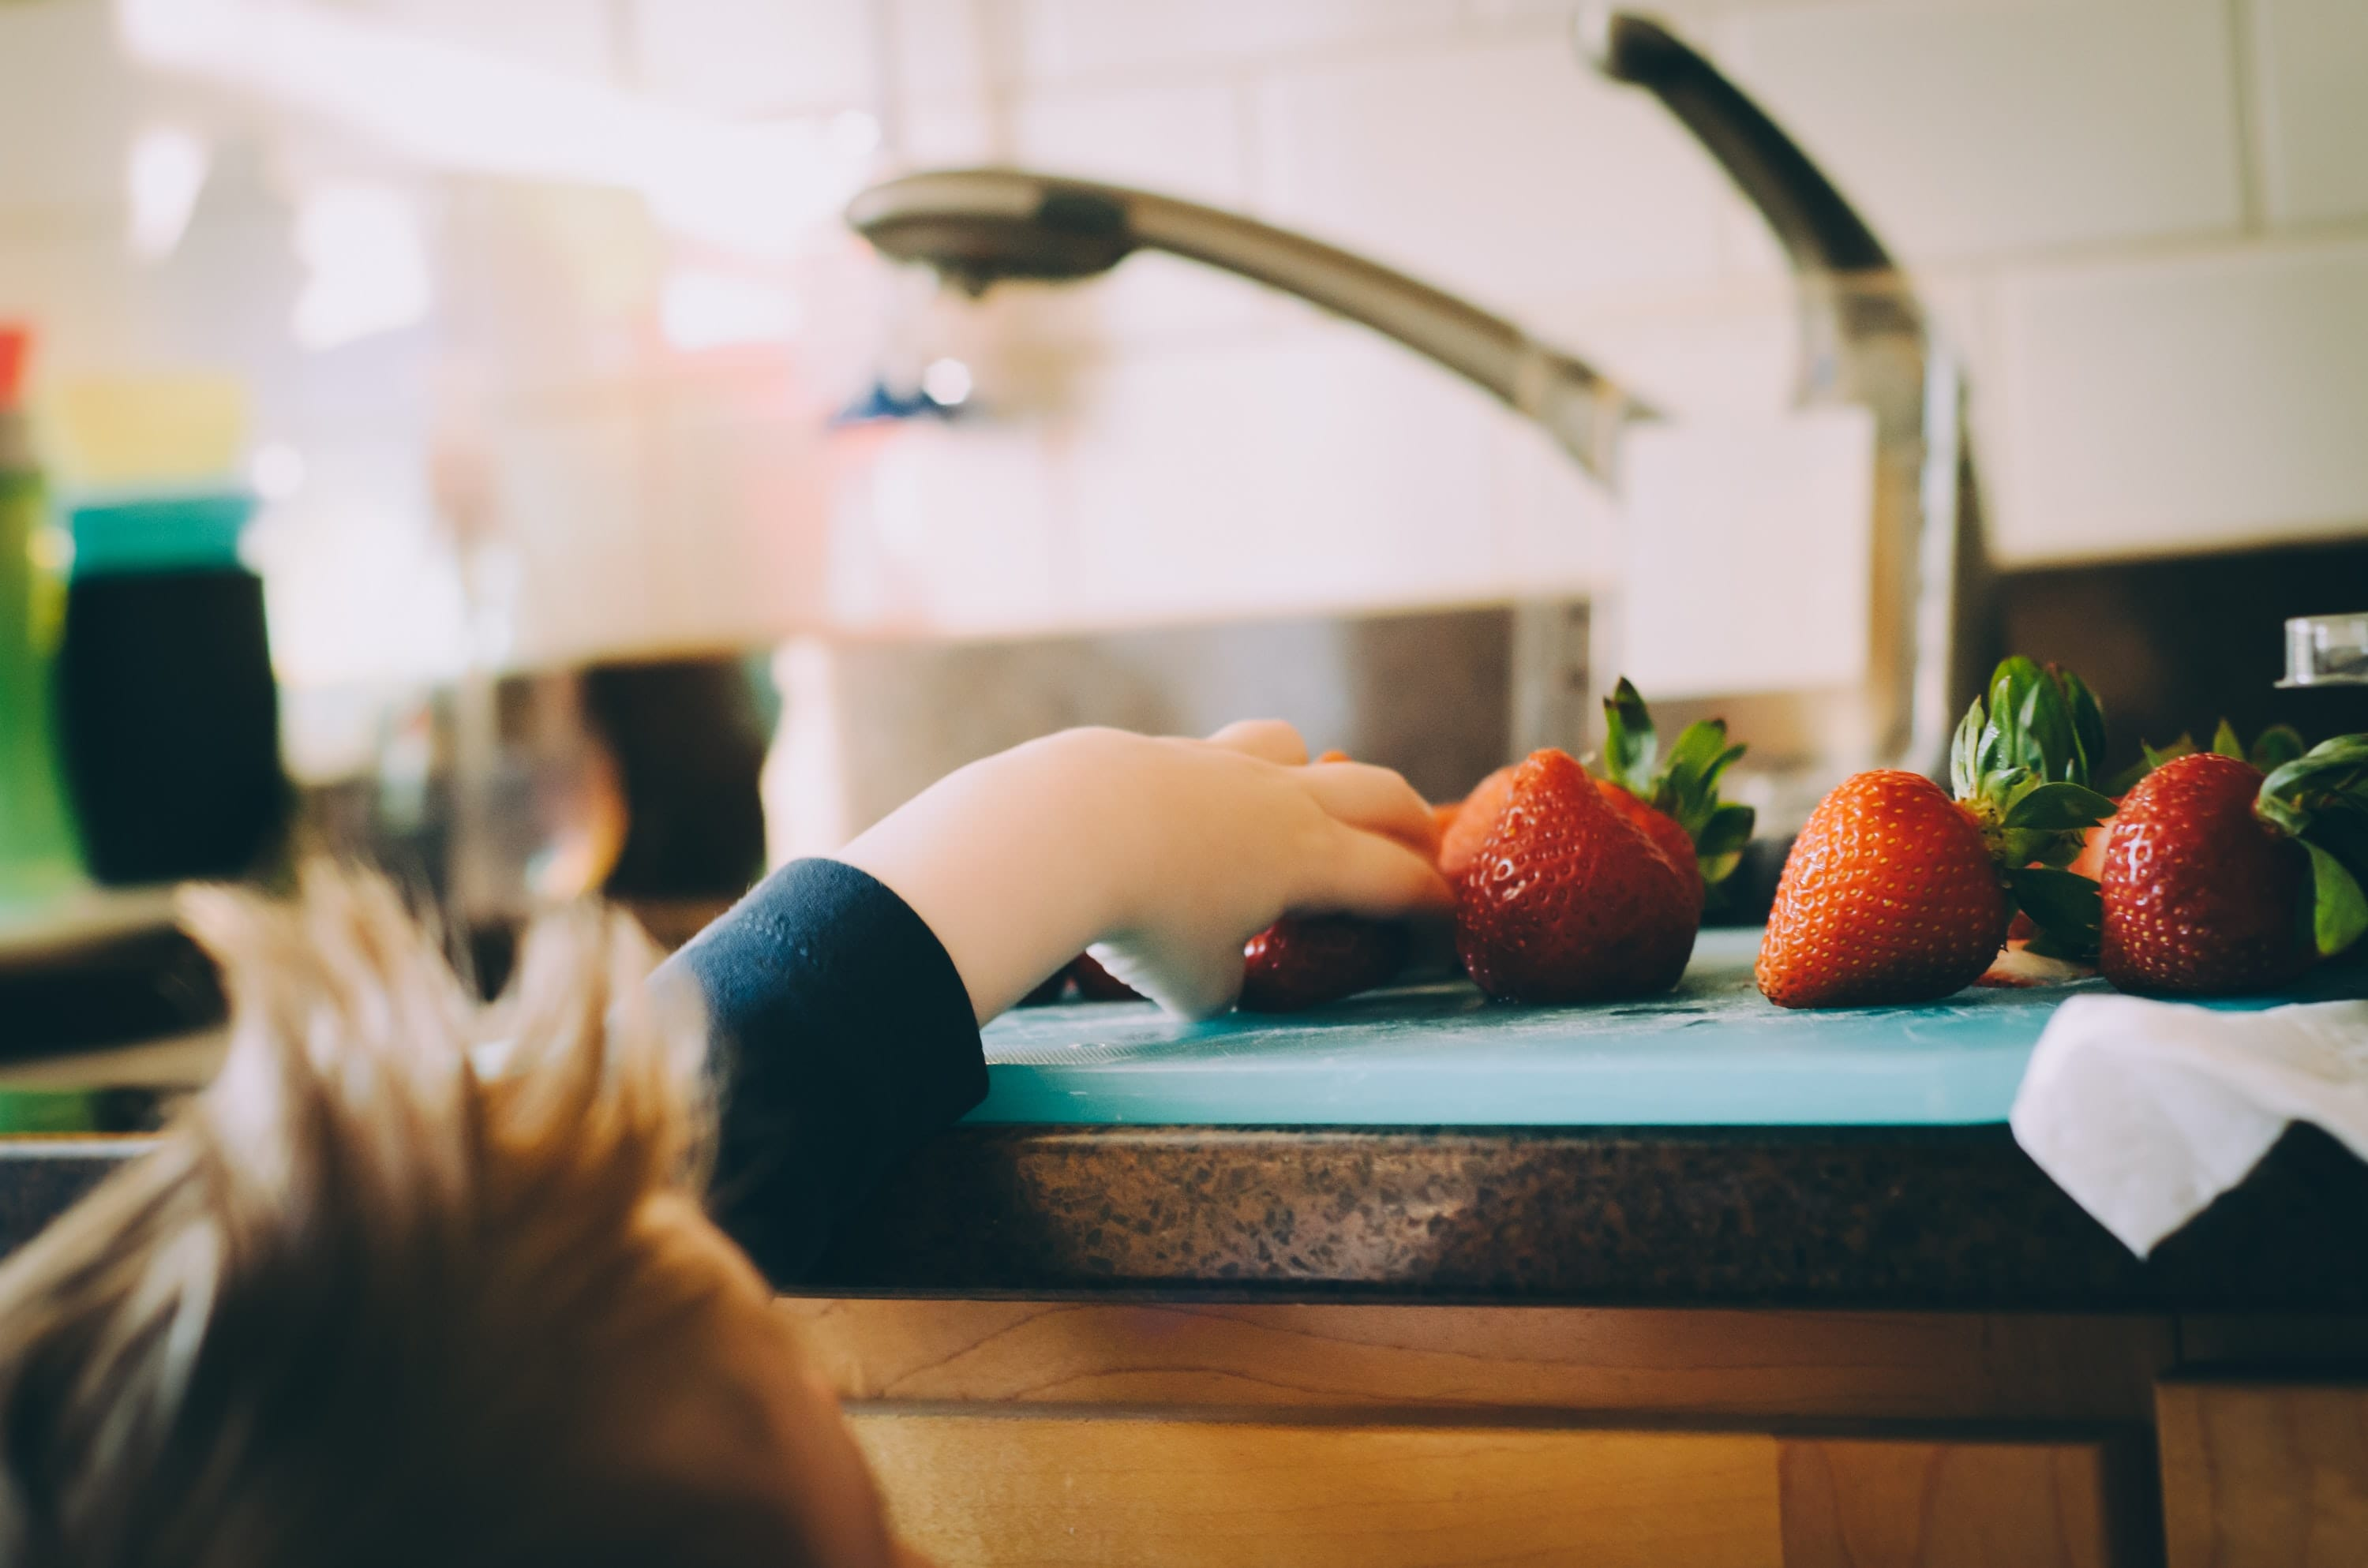 child's hand grabbing a strawberry from the kitchen counter